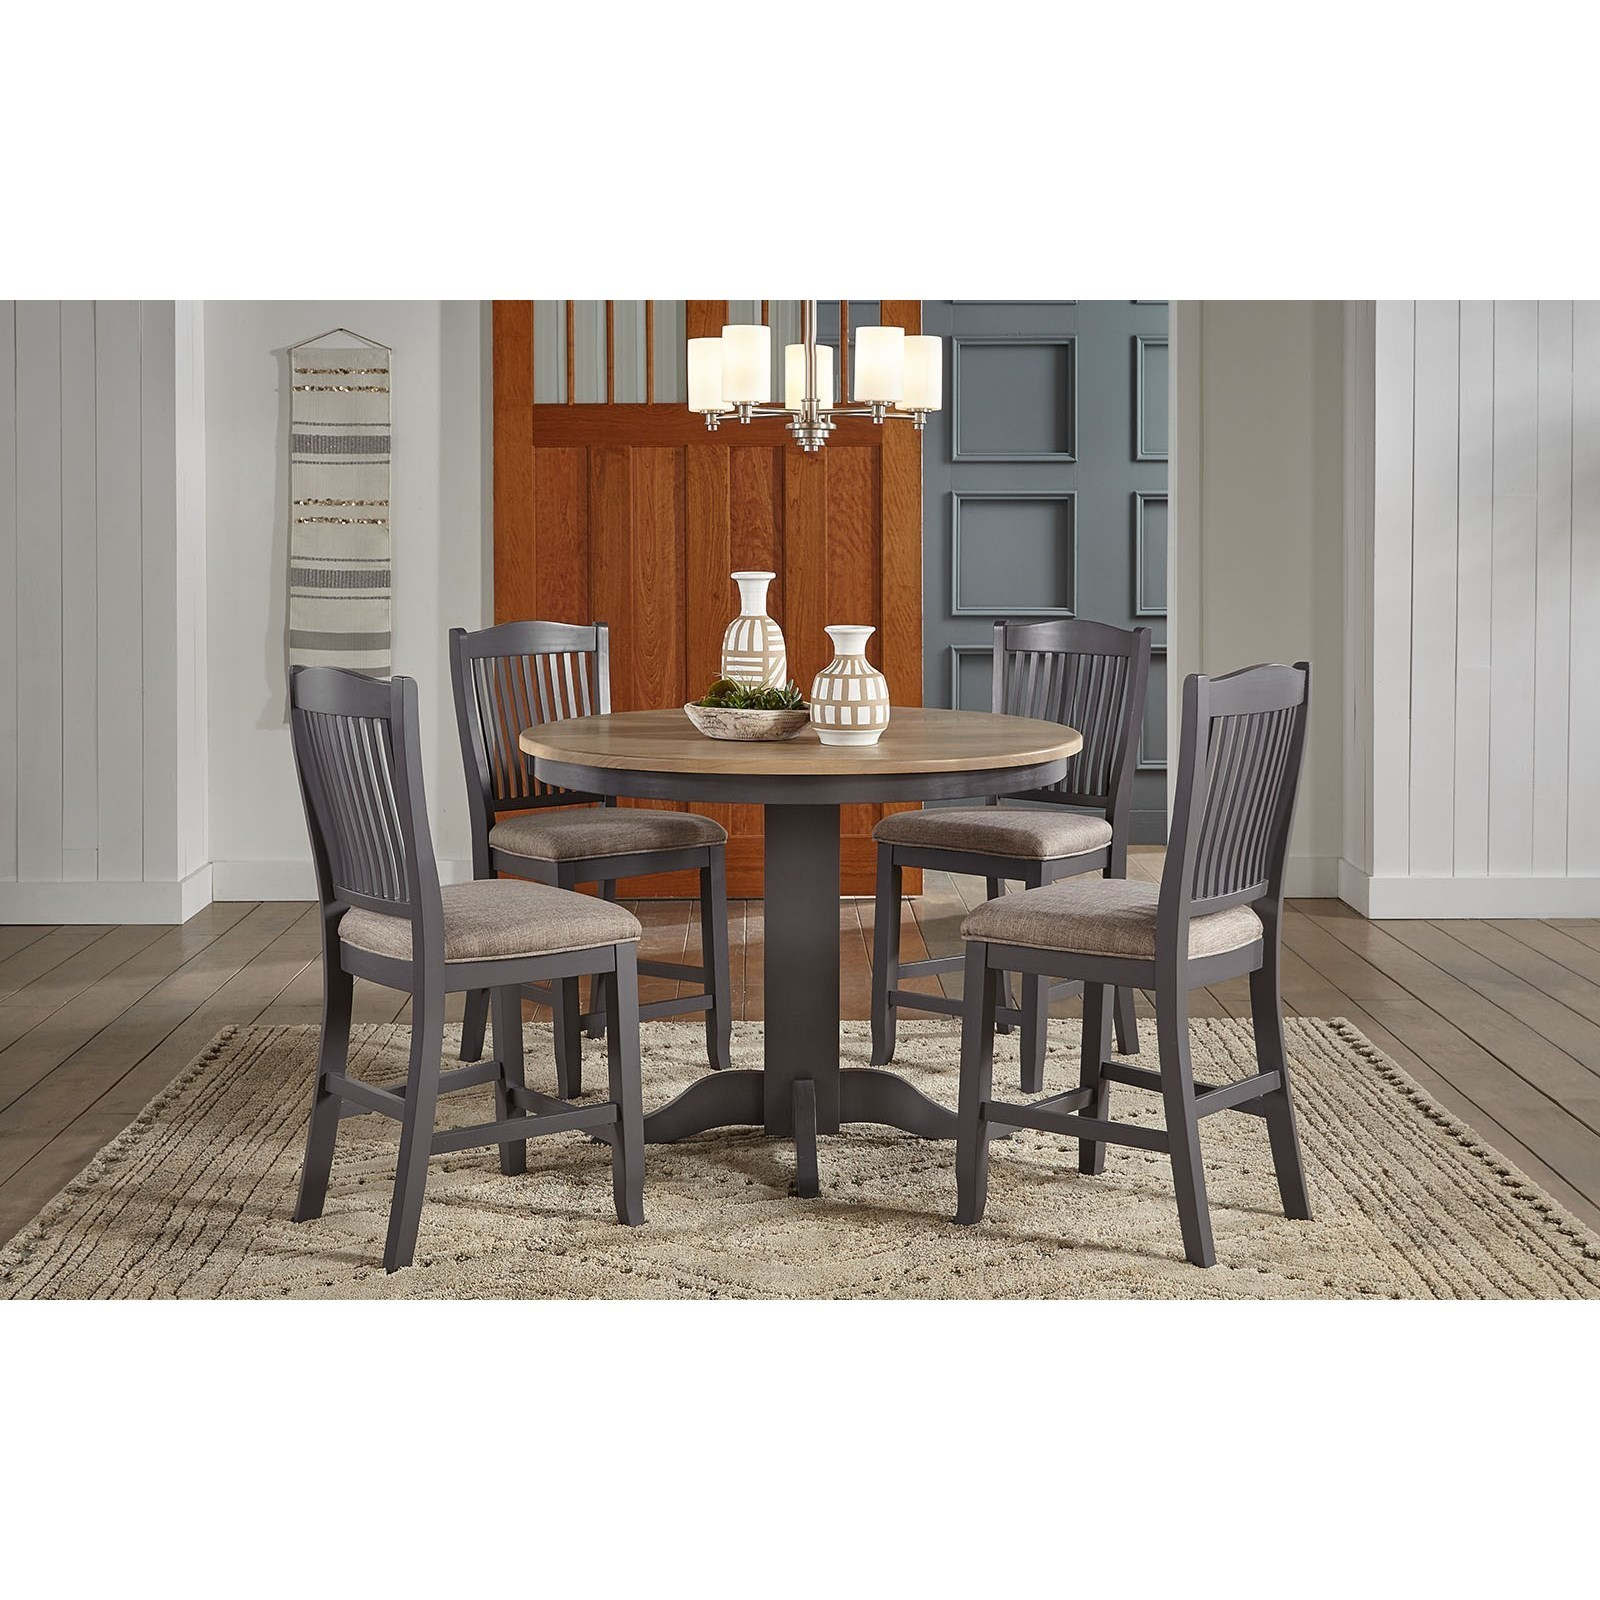 5-Piece Round Gathering Height Table and Upholstered Chair Set